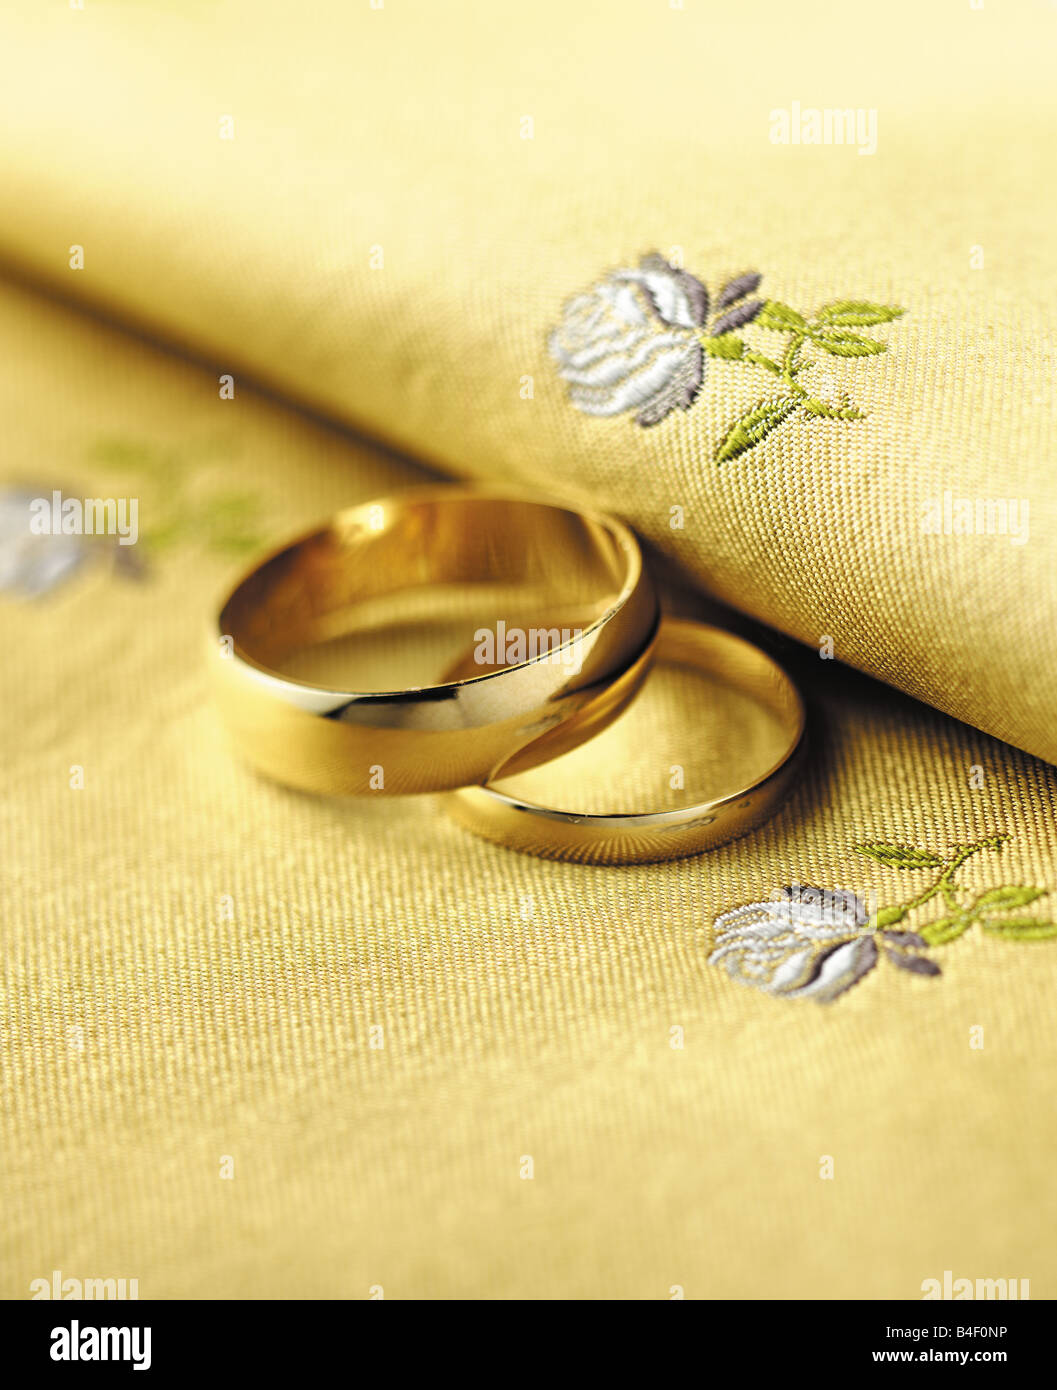 His Hers Gold Wedding Rings On A Fabric Background With Roses